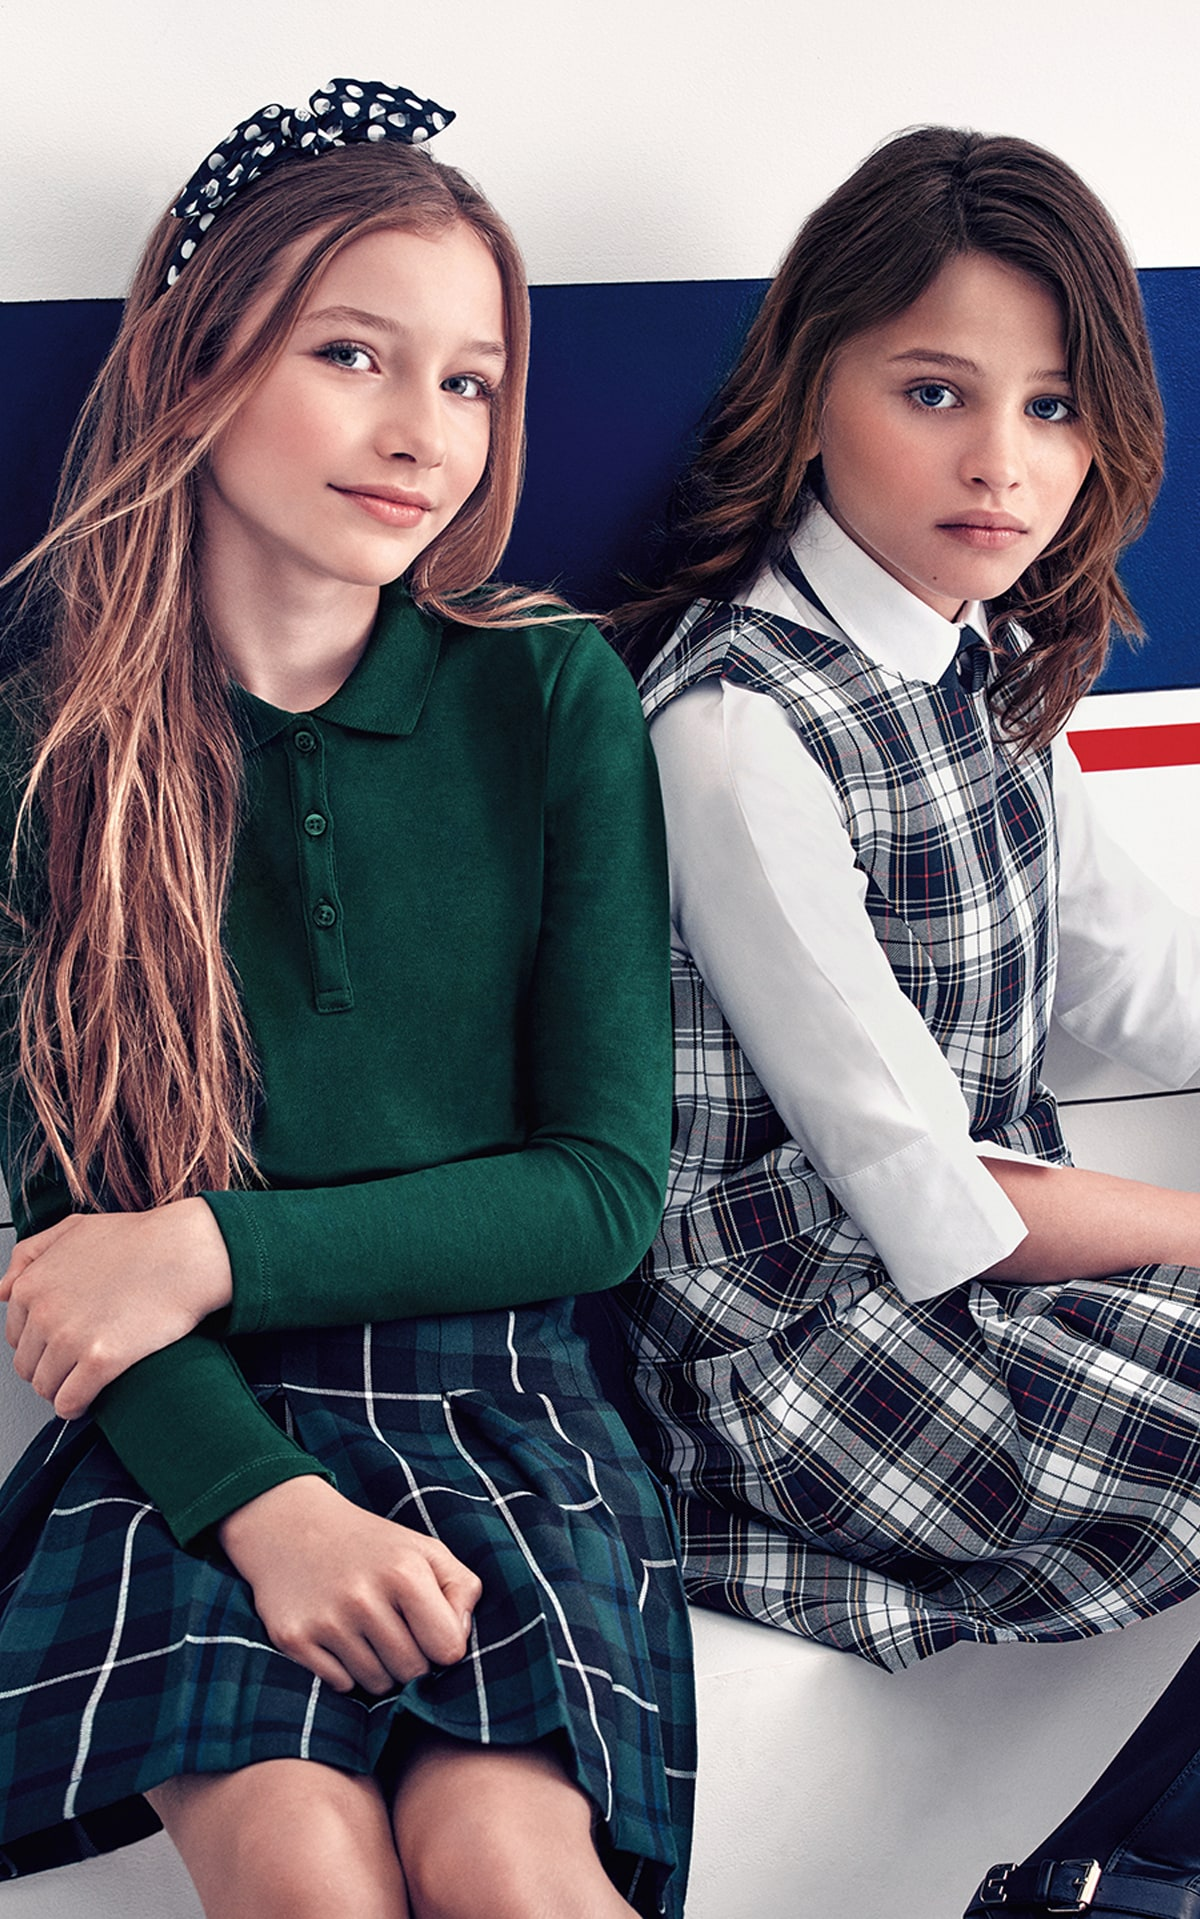 Tommy Hilfiger Kids Maasmechelen Village Outlet